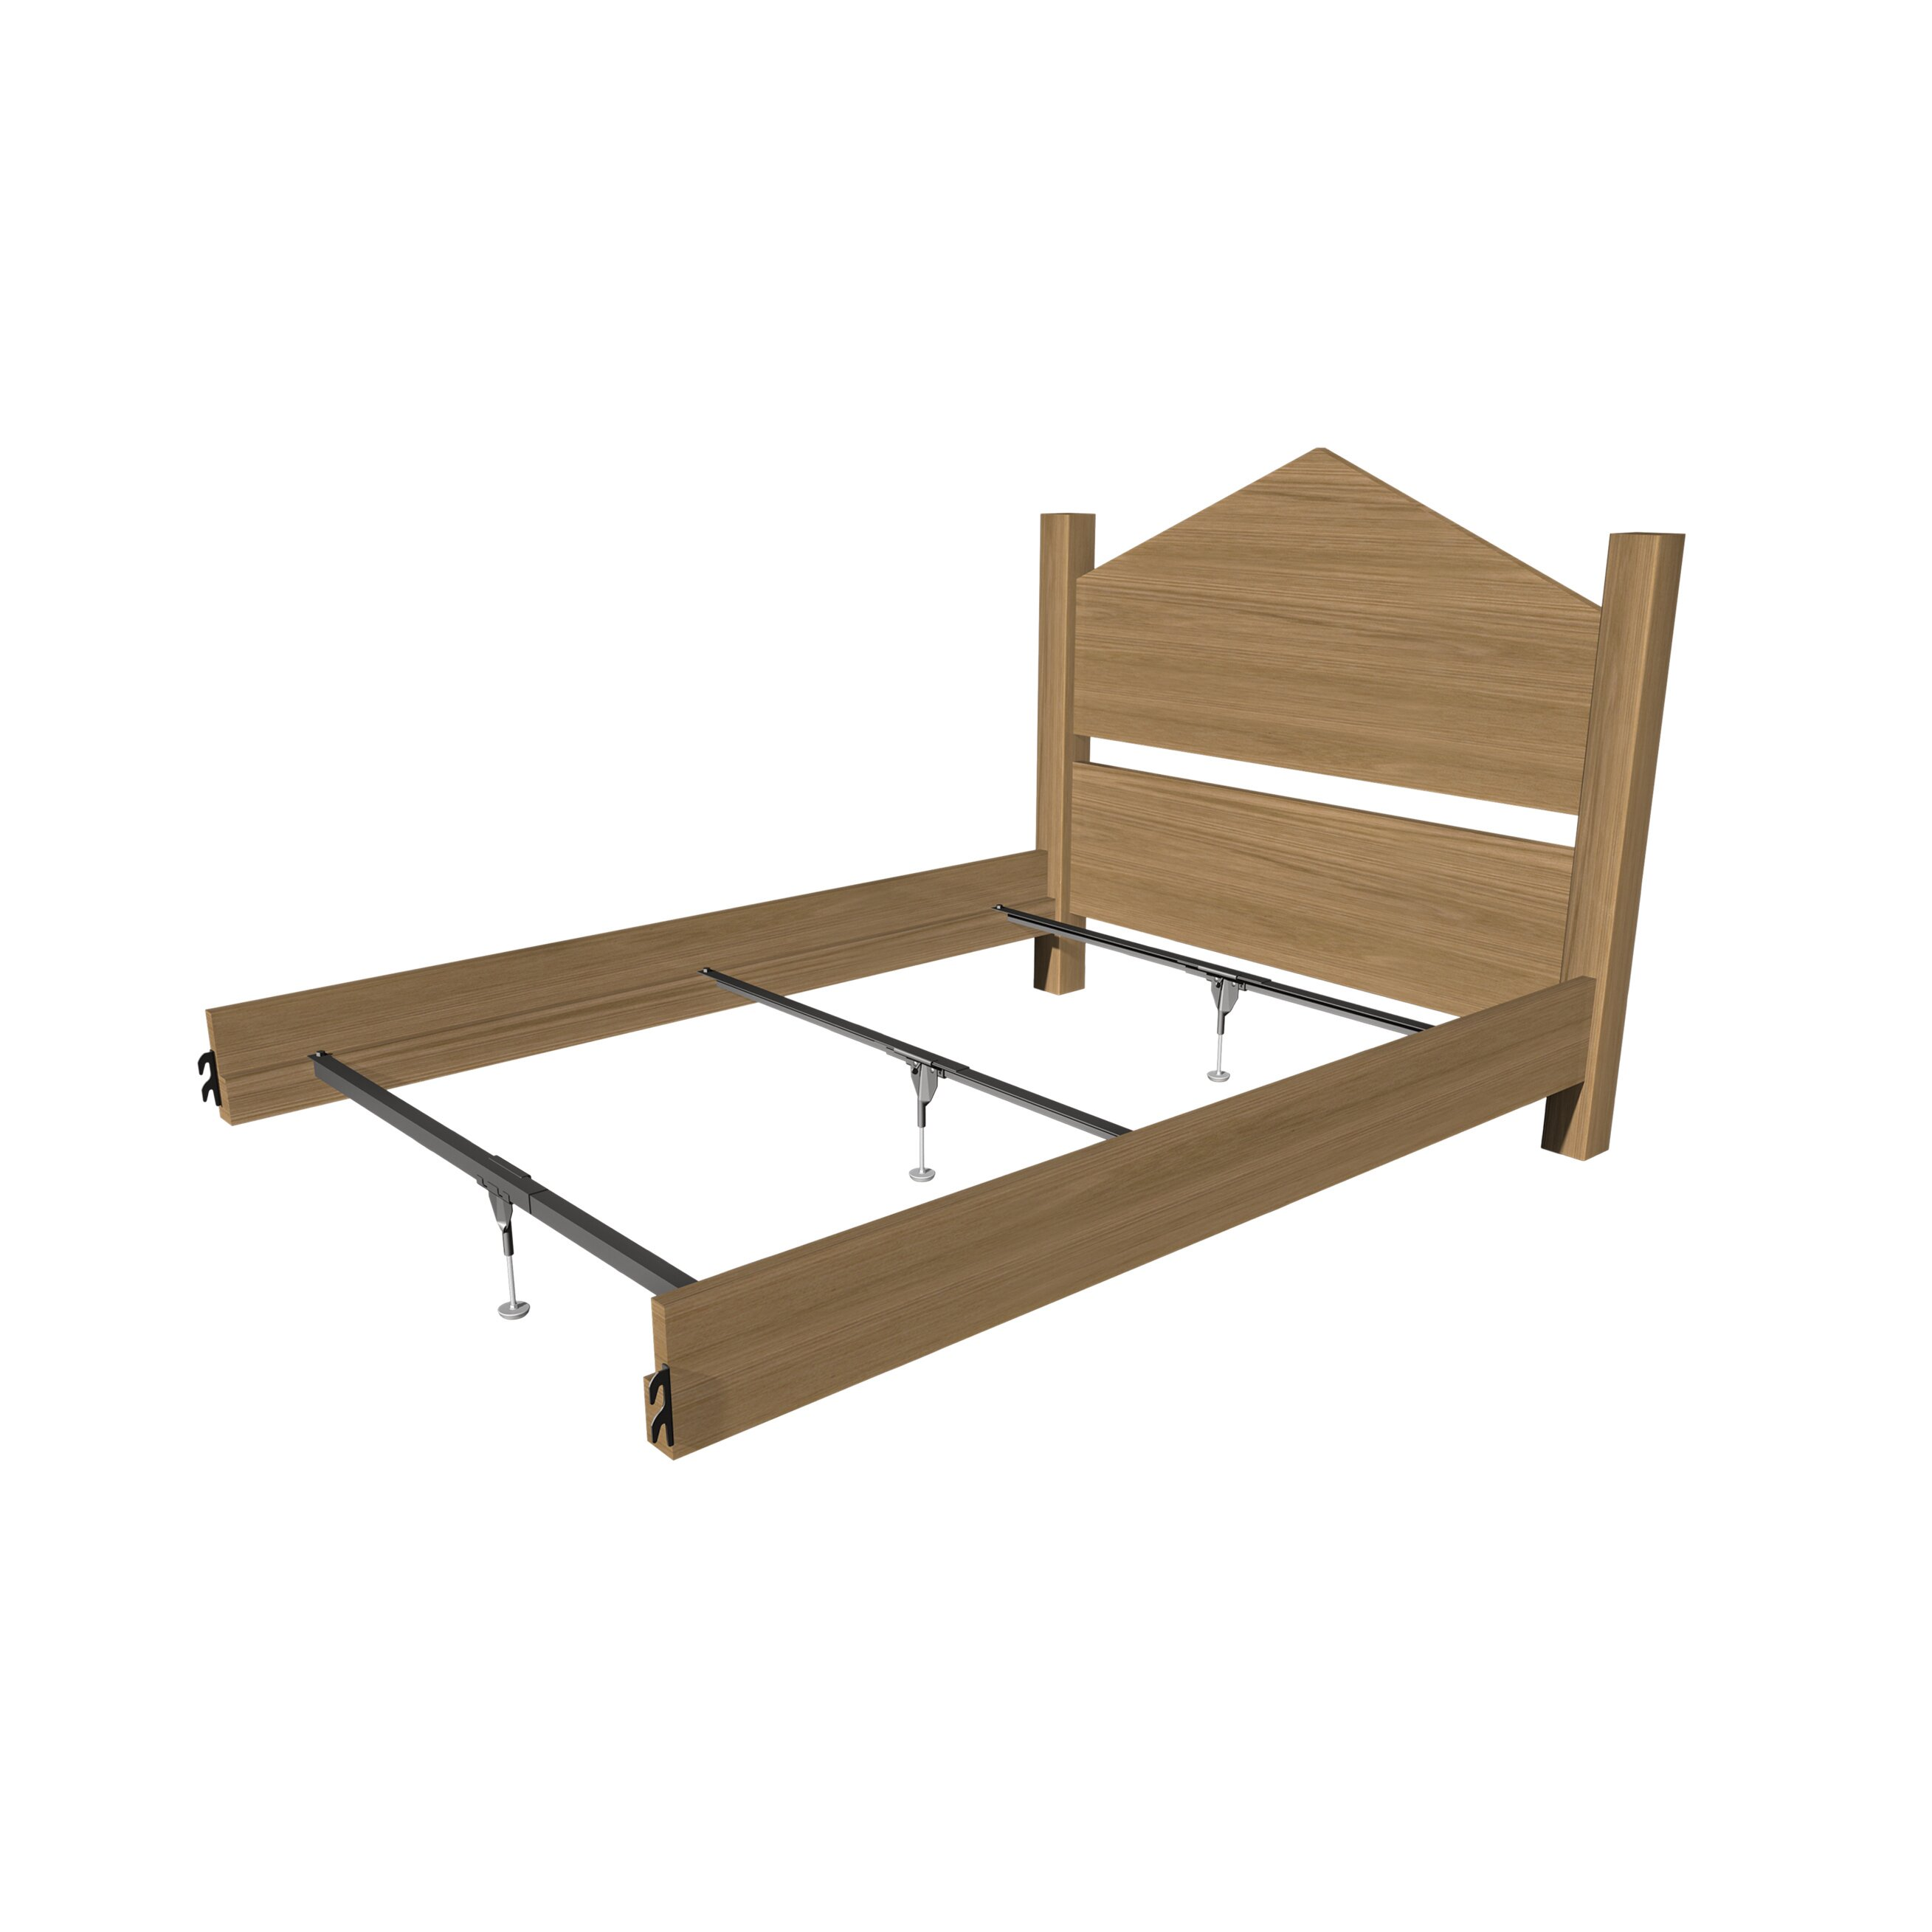 Mantua Mfg Co Support System For Wood Bed Rails